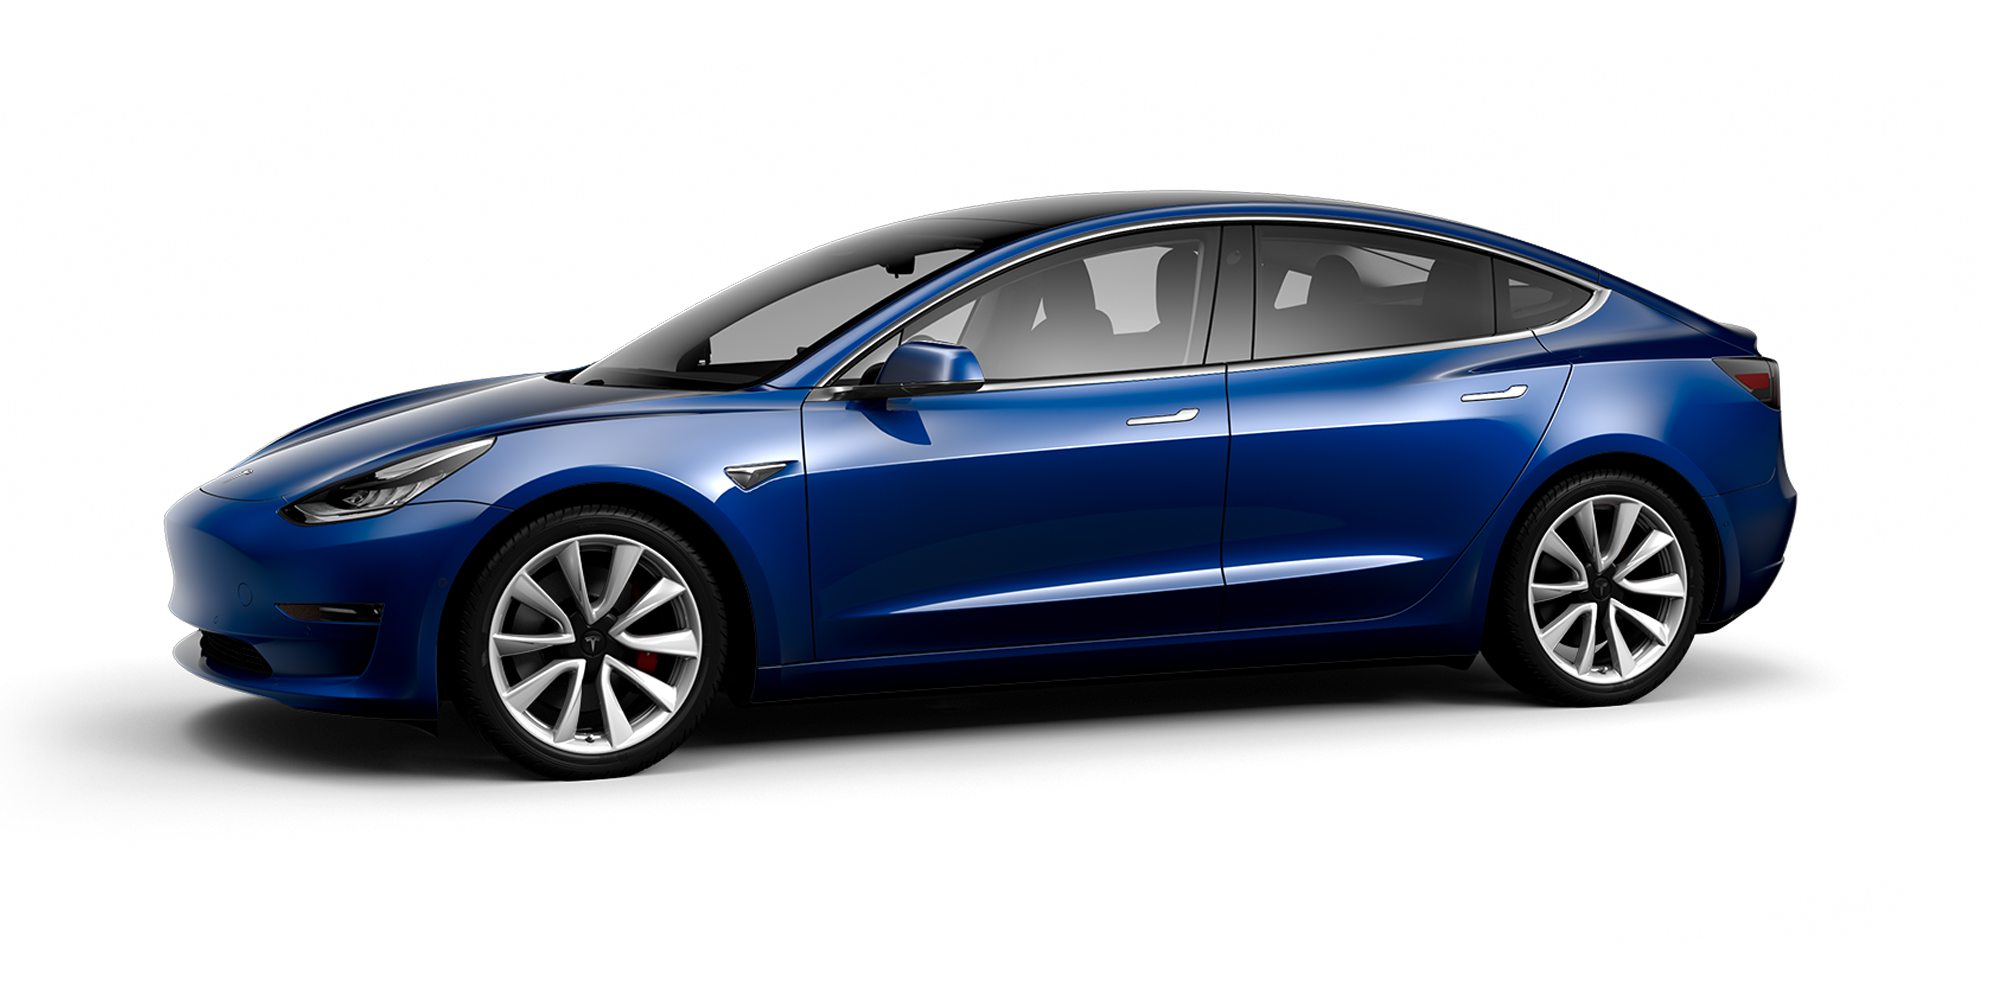 Ladeguiden - Tesla Model 3 - Elbilgrossisten